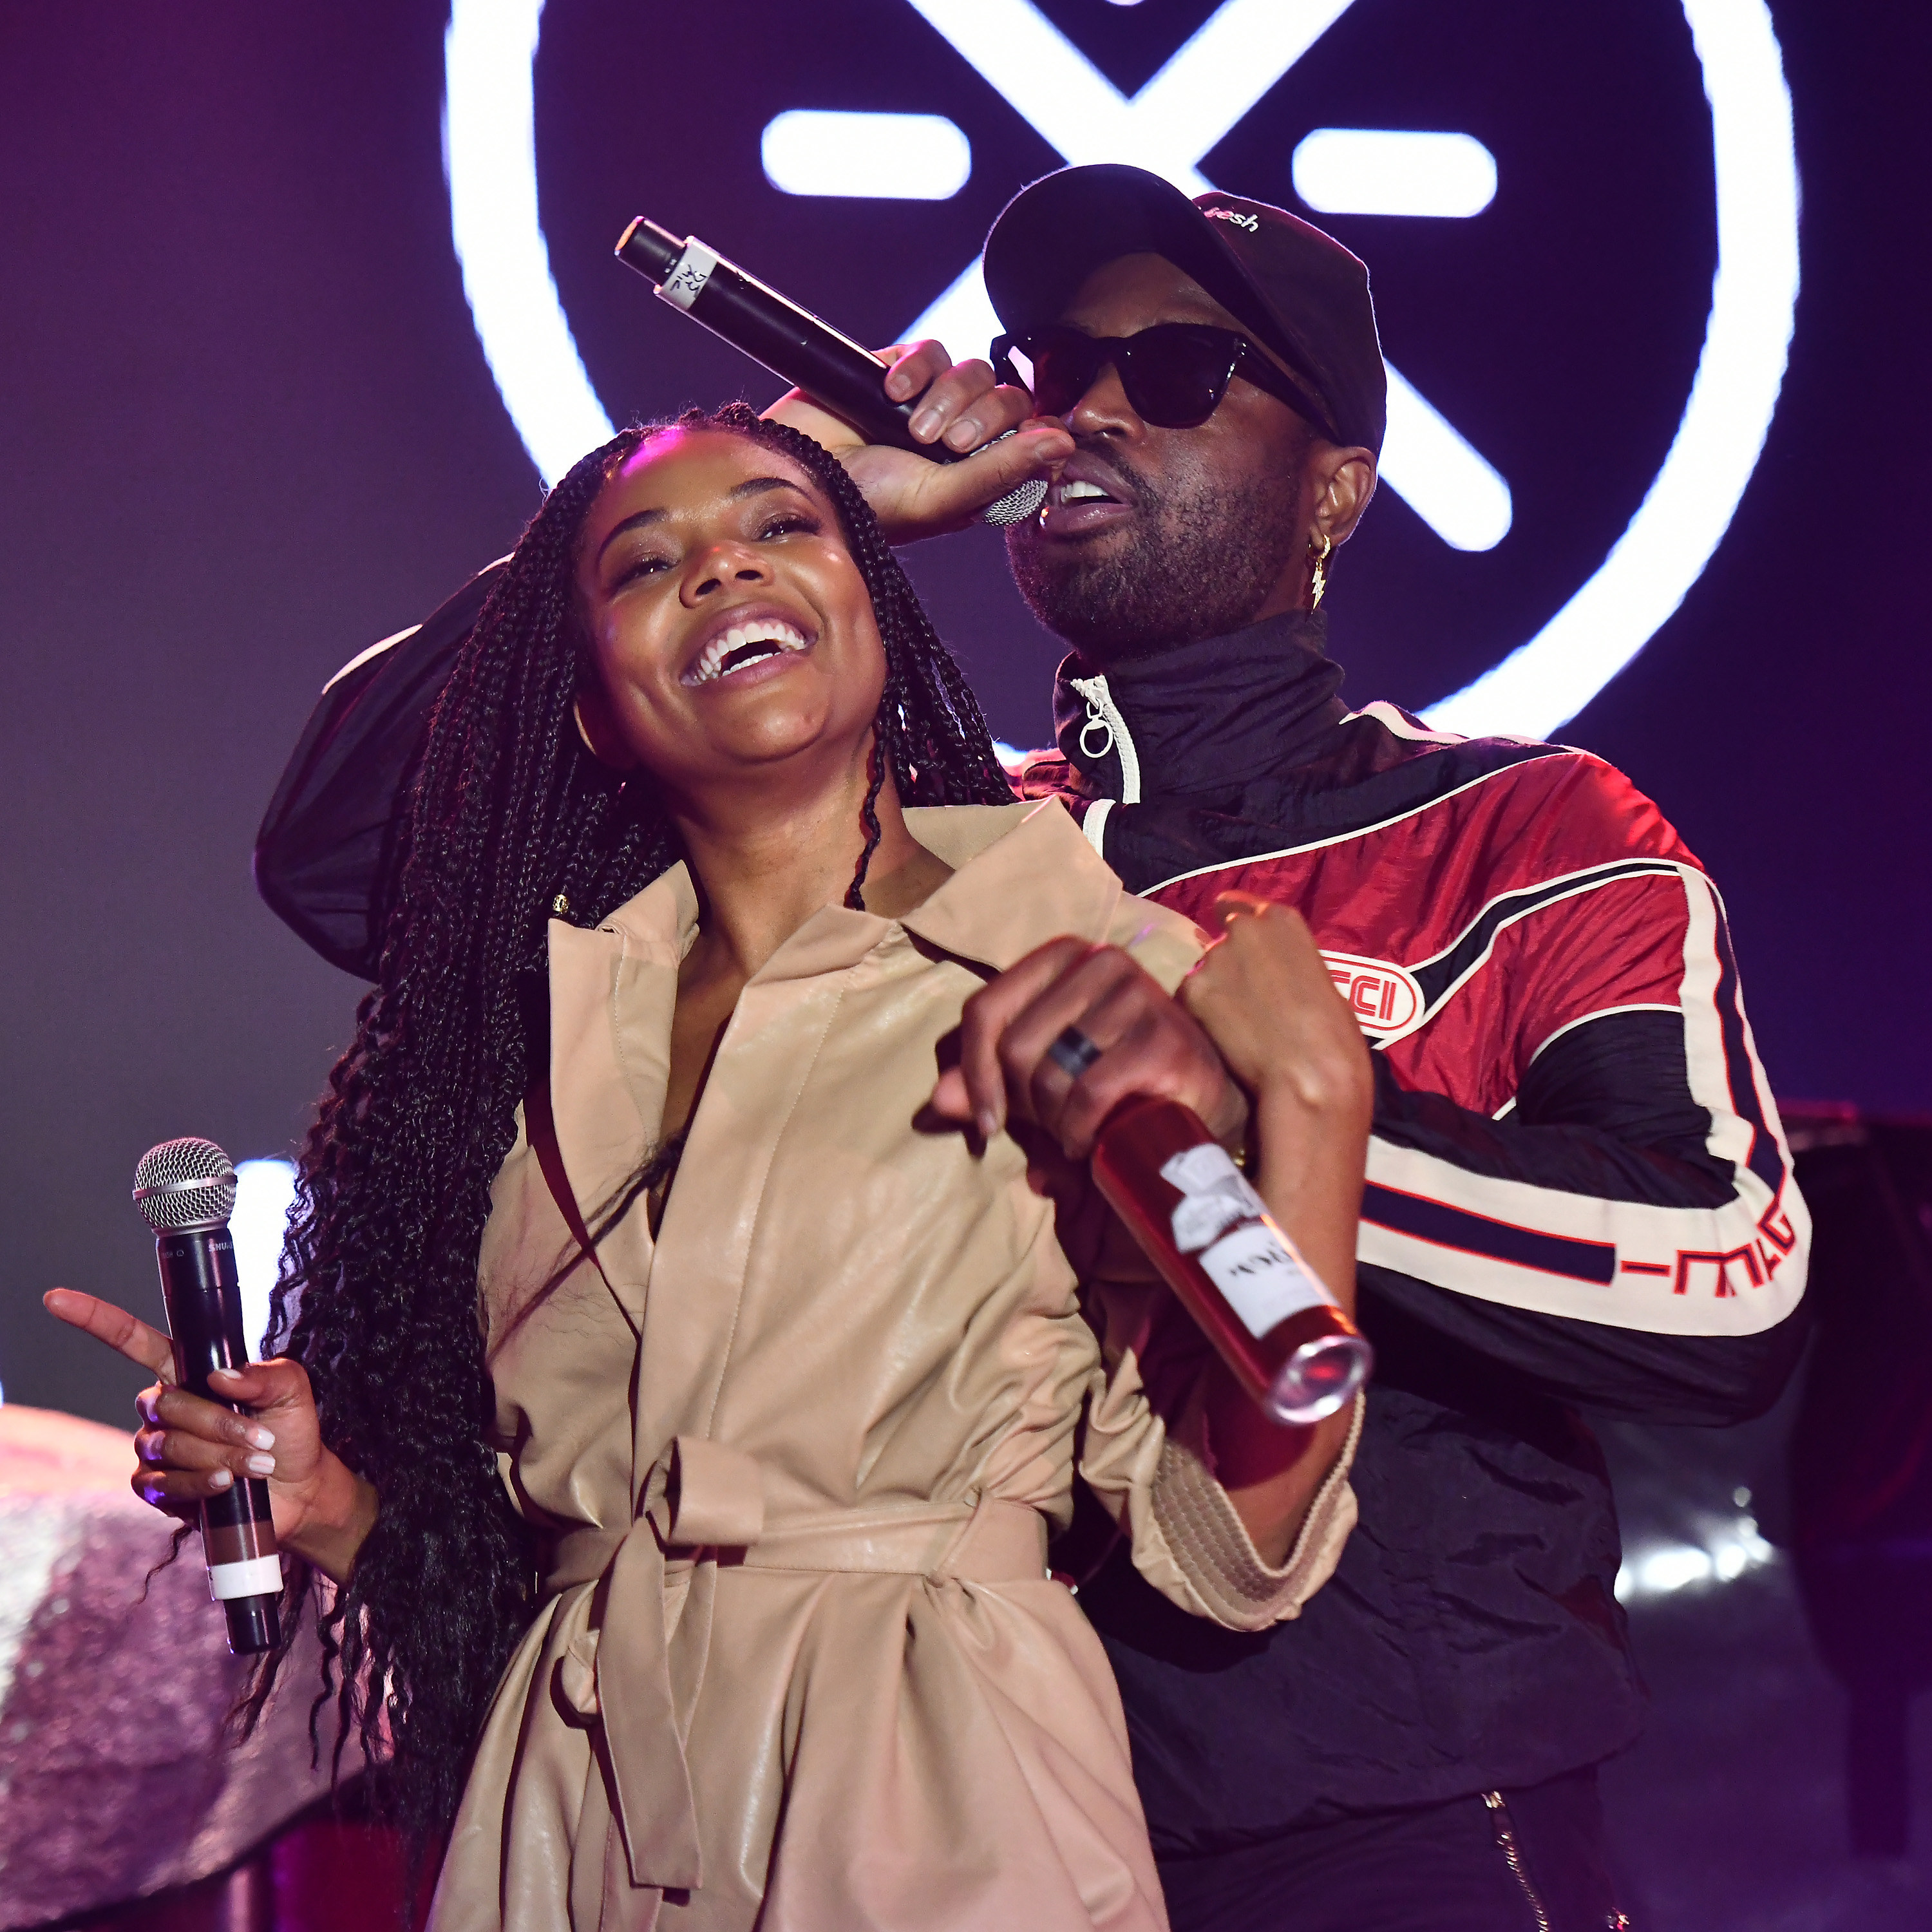 Dwyane Wade and Gabrielle Union perform onstage at ONE37pm x Dwyane Wade's Masters of the Mic Karaoke at Night Two of BUDX Miami by Budweiser on February 01, 2020 in Miami Beach, Florida